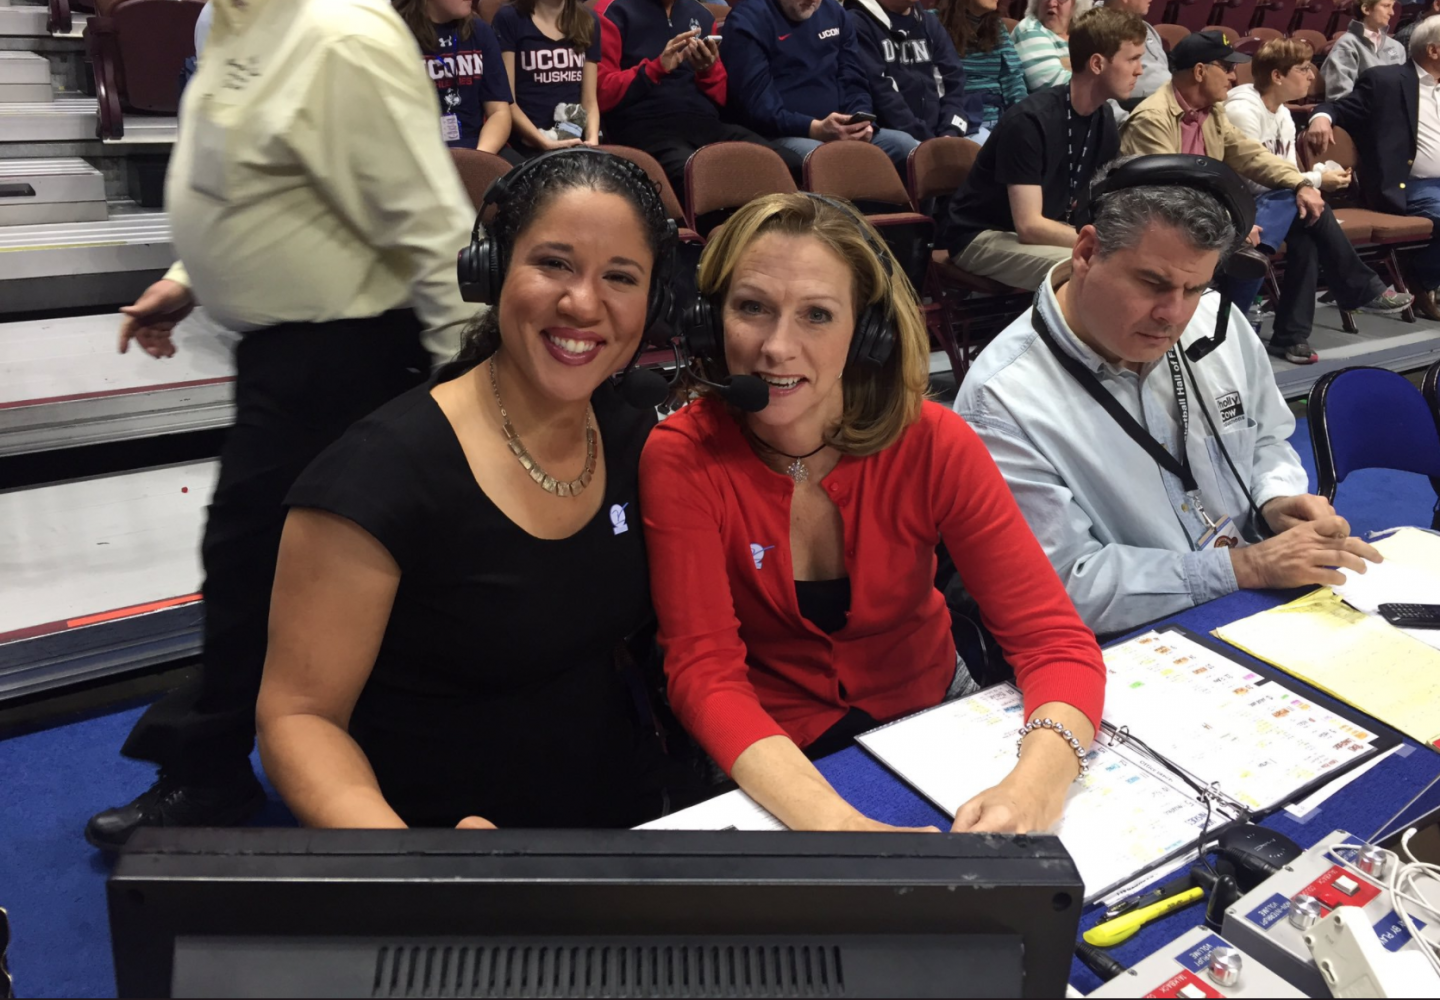 NFL Announcer Beth Mowins (right) faced sexist criticism after becoming the first female play-by-play announcer in 30 years to call an NFL regular season game.